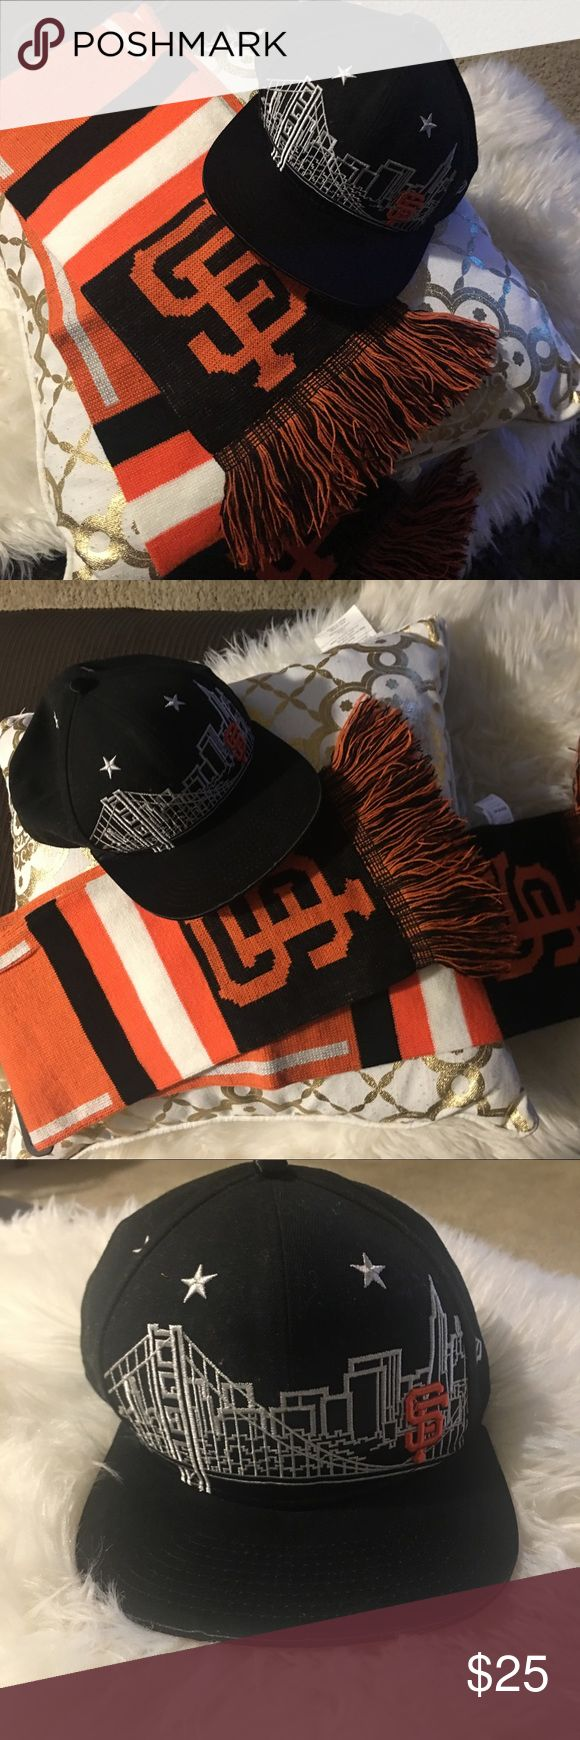 🦋Bundle🦋 SF Giants Cap & Scarf SAN FRANCISCO GIANTS KNIT 2013 TEAM SCARF MLB LICENSED retails for $19, never wore. One size fits all scarf made of 100% acrylic. Purchase cap at the att park for $39 plus tax. Cap was used one time only. All items are honestly presented to the best of my knowledge, and are stored in a non-smoking environment. Item is in great condition unless noted. No returns  Please view listing pictures & additional questions are always welcomed. New Era Accessories Hats